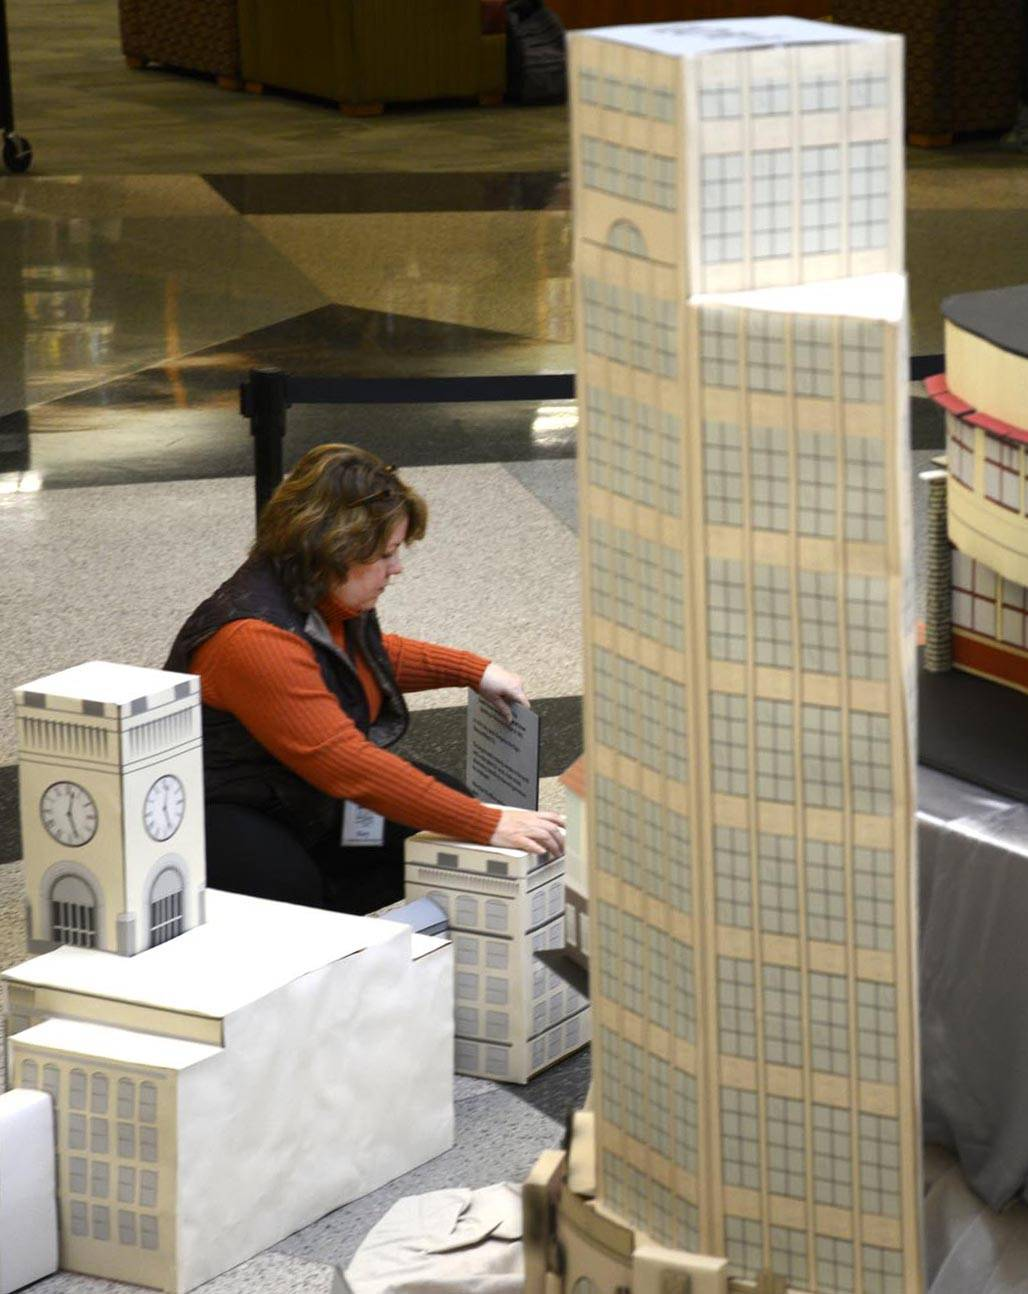 A model of the Elgin Tower Building stands taller than Mary Amici-Kozi, its creator. She works in the creative services department of the Gail Borden Public Library.